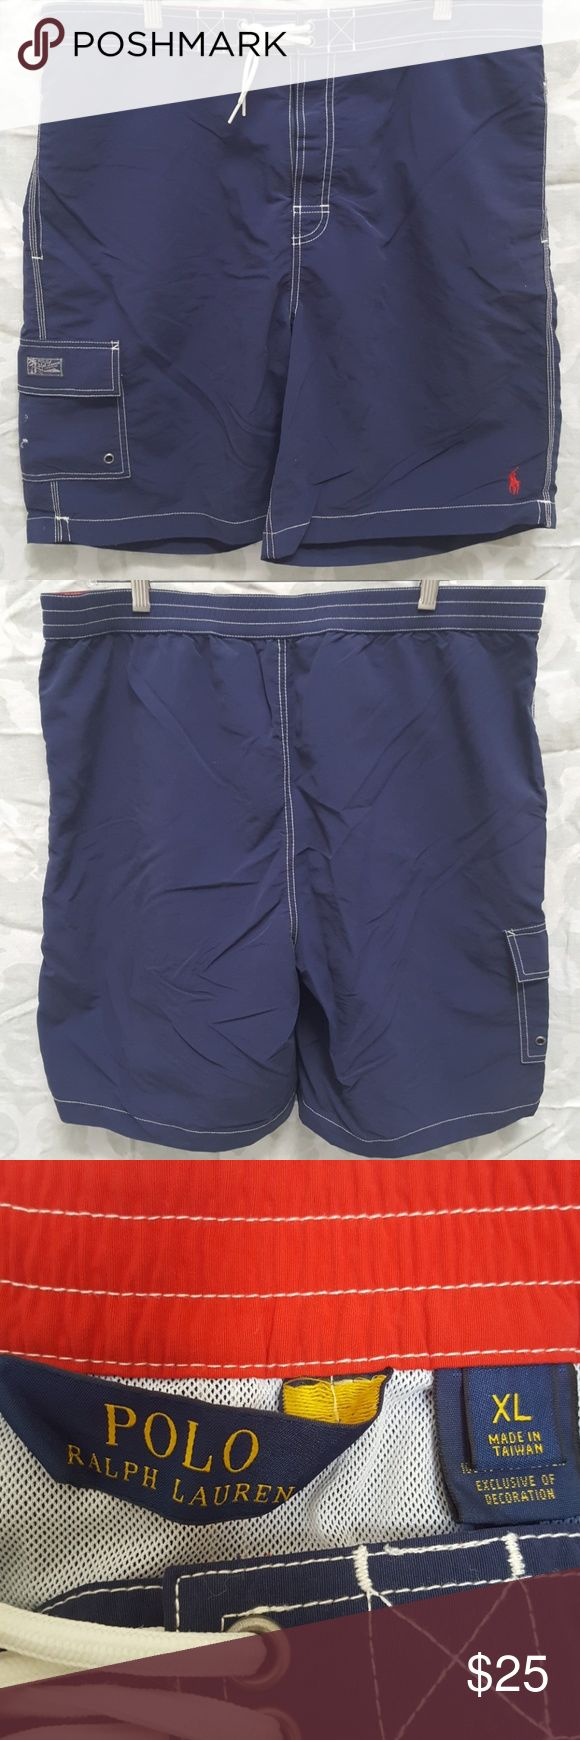 Mens Polo Ralph Lauren Indigo/Red Swim Shorts For sale is a used pair of  Mens Polo Ralph Lauren Indigo and Red Swim Shorts. they are a mens size X-large (38-40 waist)   Shell: 100% Nylon Lining: 100% Polyester  Shorts are in good used condition.  Offers welcomed using offer button.   NO TRADES.  NO LOWBALLING. Polo by Ralph Lauren Swim Board Shorts